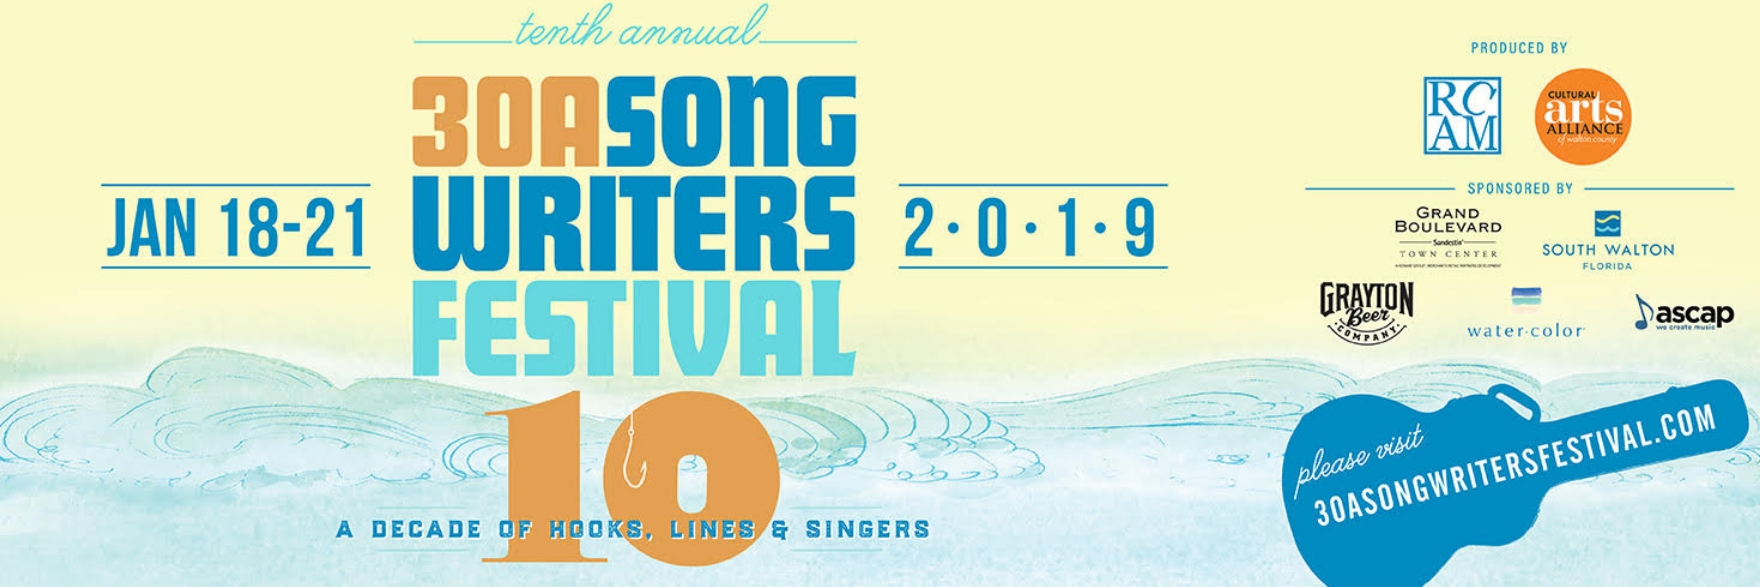 10th Annual 30A Songwriters Festival Jan 18-21 - I am excited to be heading down to sunny Florida with Nicole Chillemi for a weekend of playing and listening. This is one of my favorite festivals. See you there!